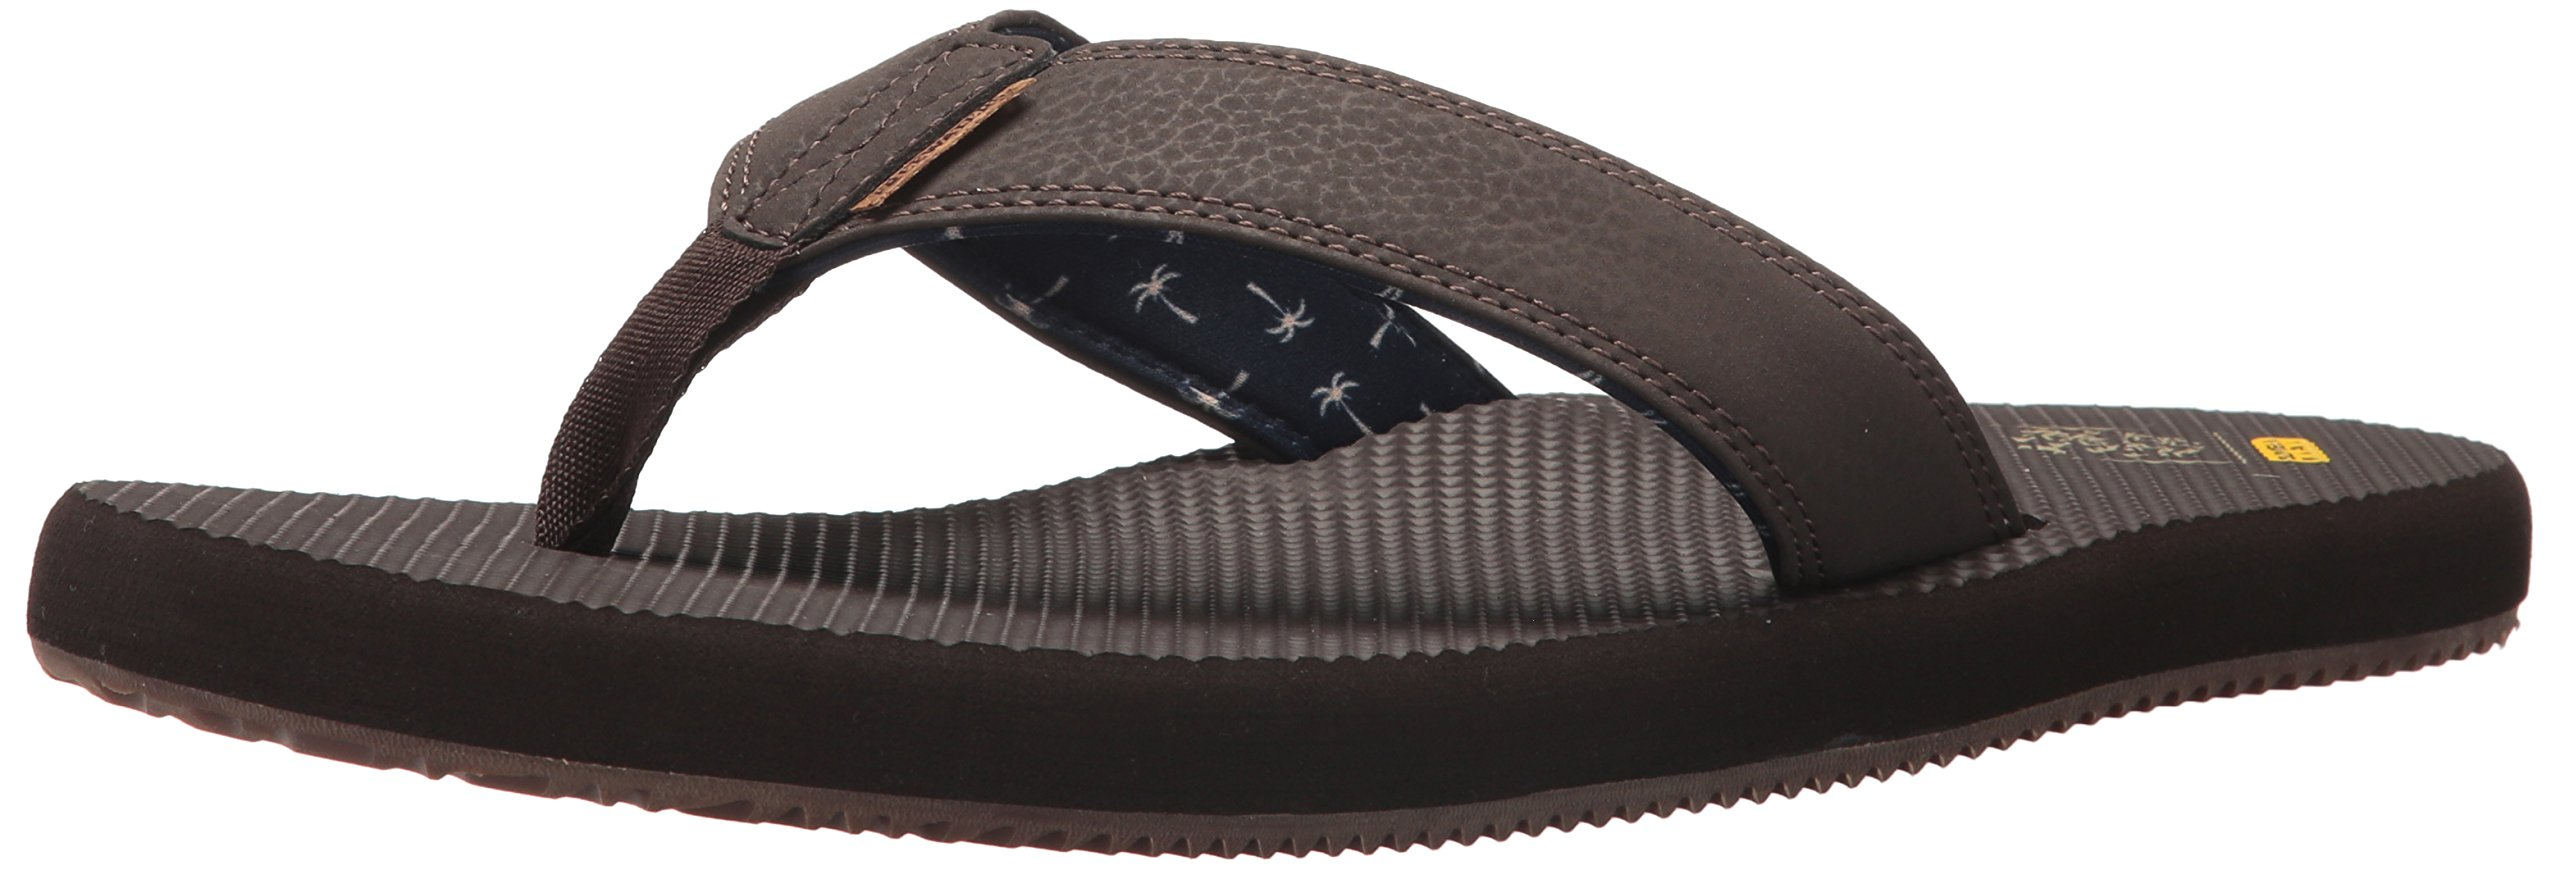 Freewaters Men's Supreem Dude Flip-Flop, Brown, 11 Medium US